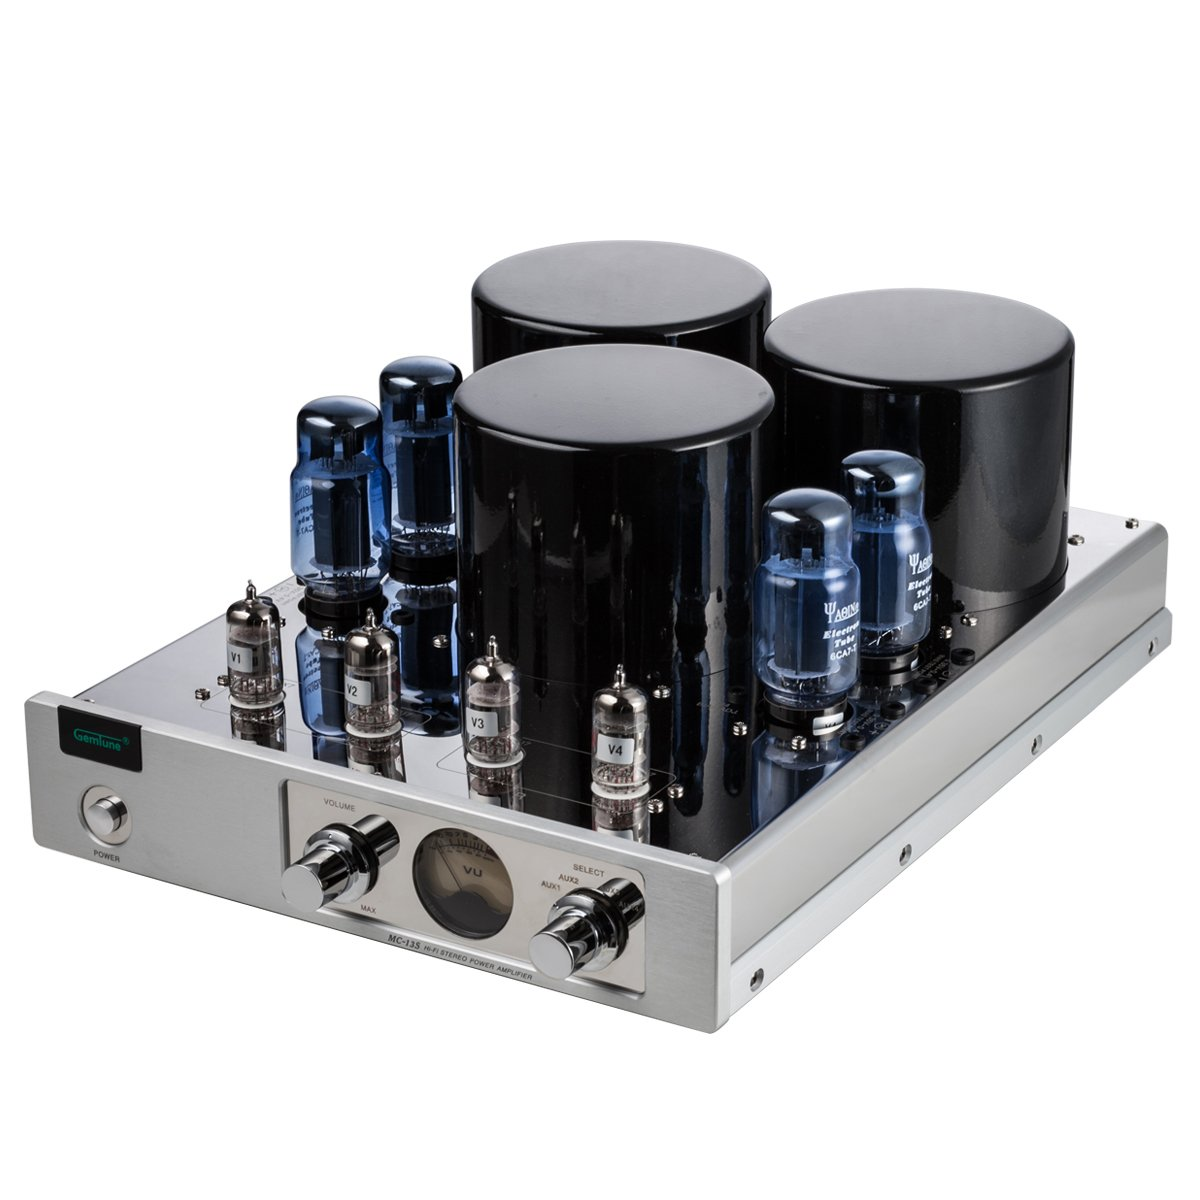 Gemtune MC-13S Push-Pull Integrated Stereo Tube Amplifier(Without Protect Cover) by GemTune